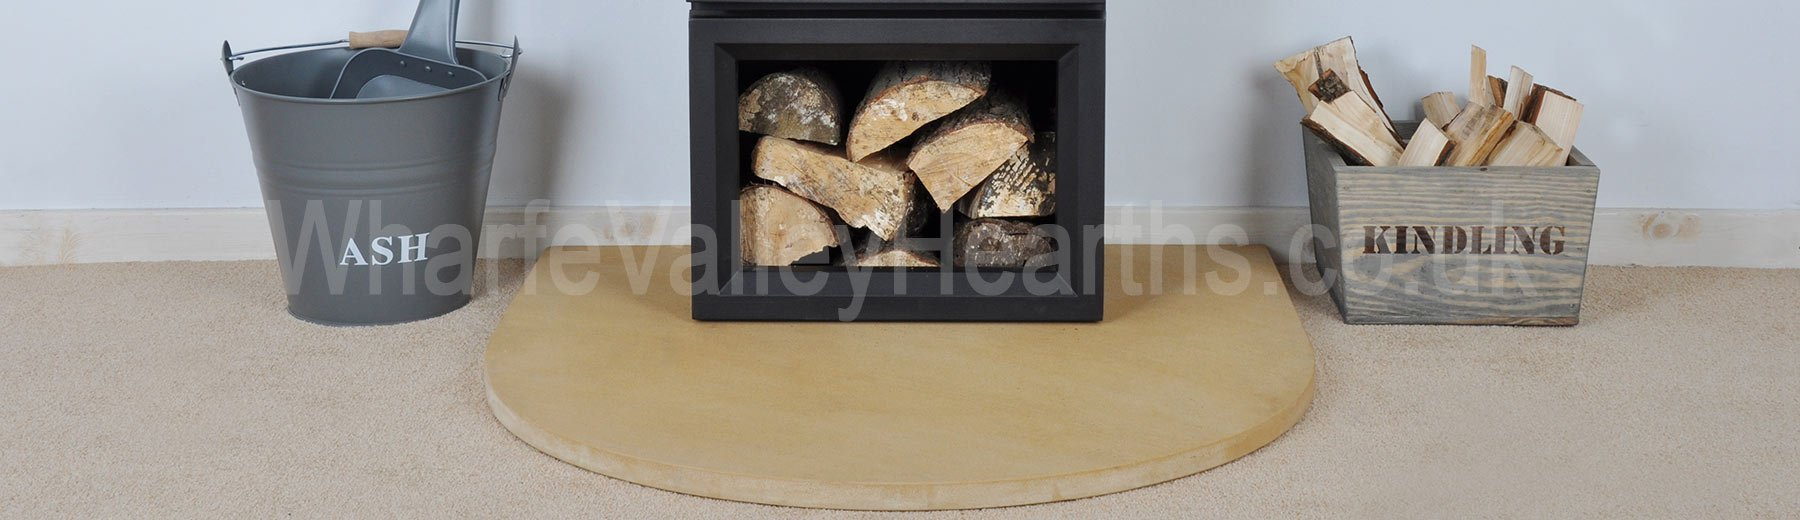 Gold Sandstone Semi-Circle Hearth